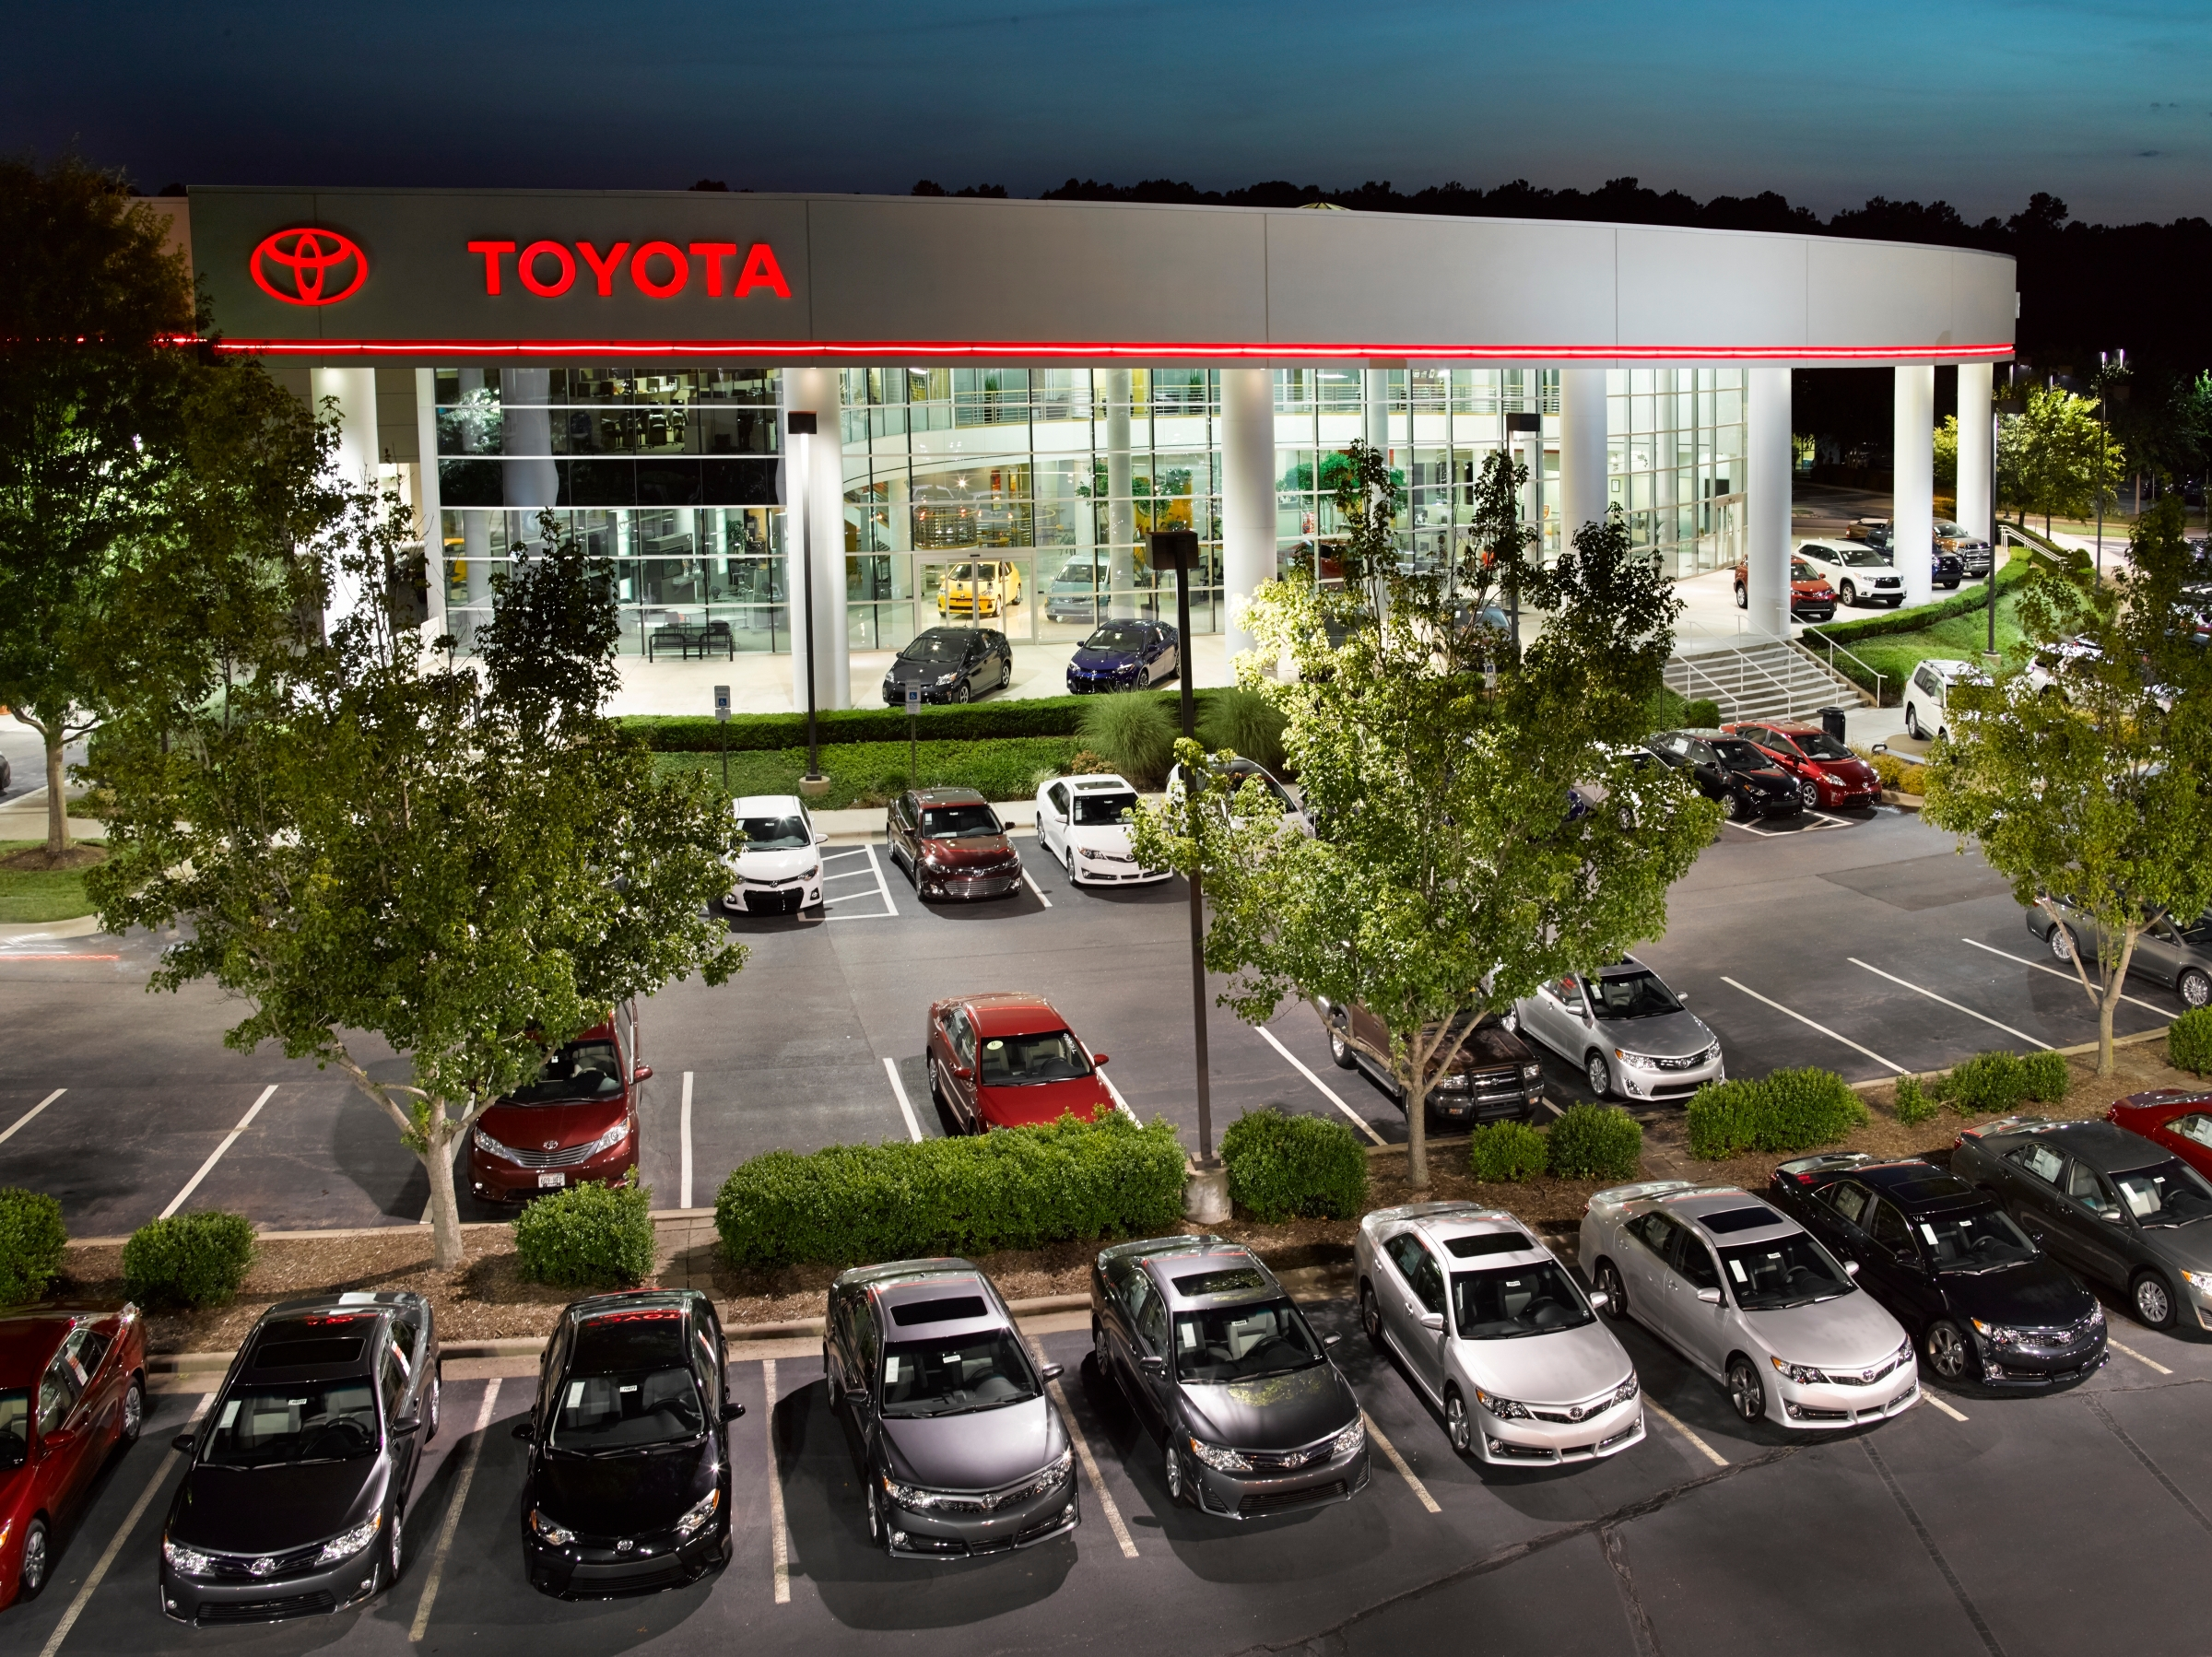 fred anderson toyota 9101 glenwood ave raleigh nc auto dealers